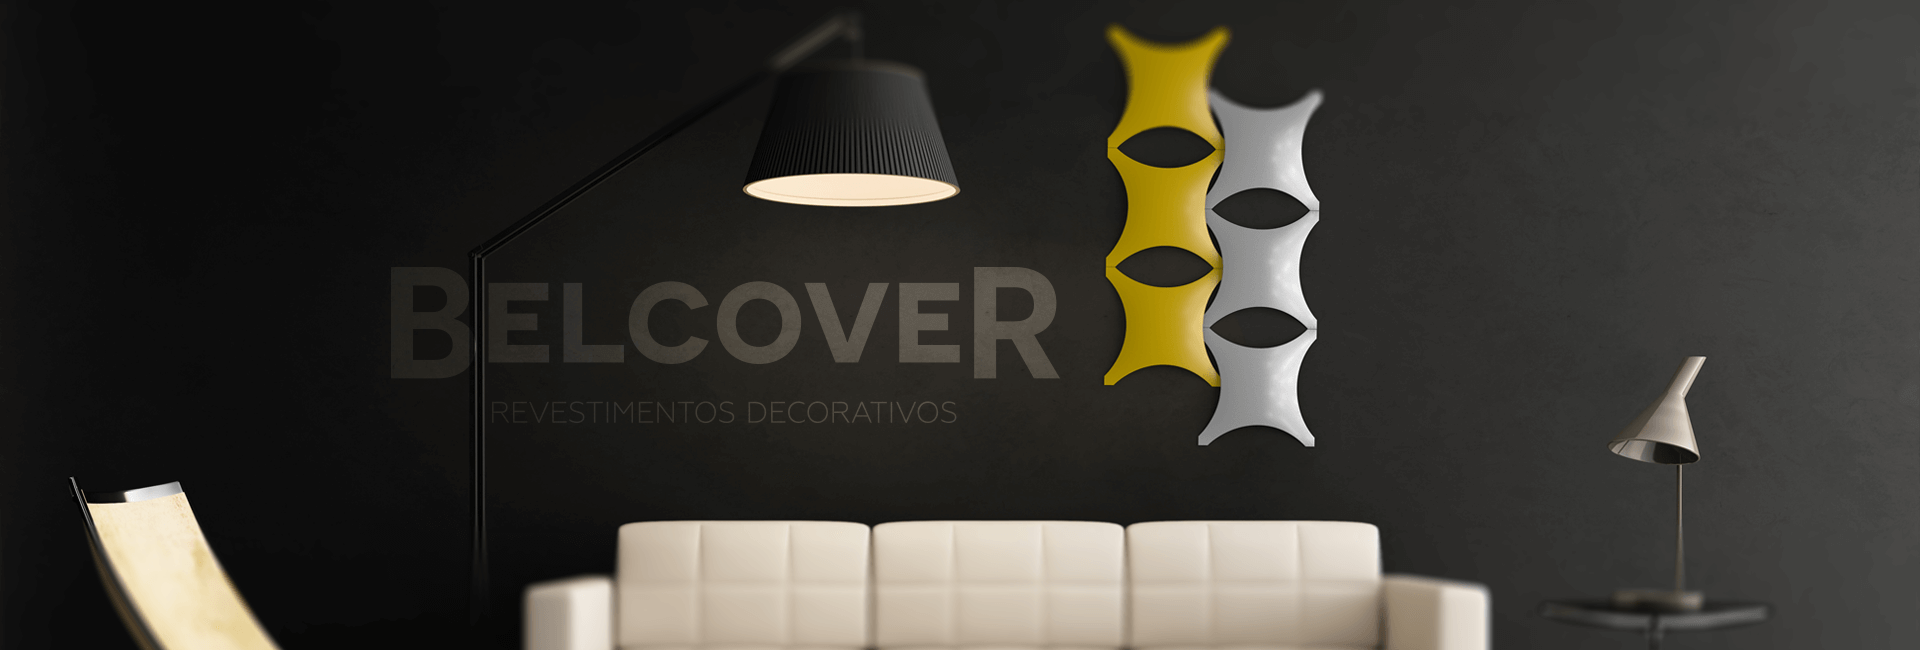 HOME - Belcover